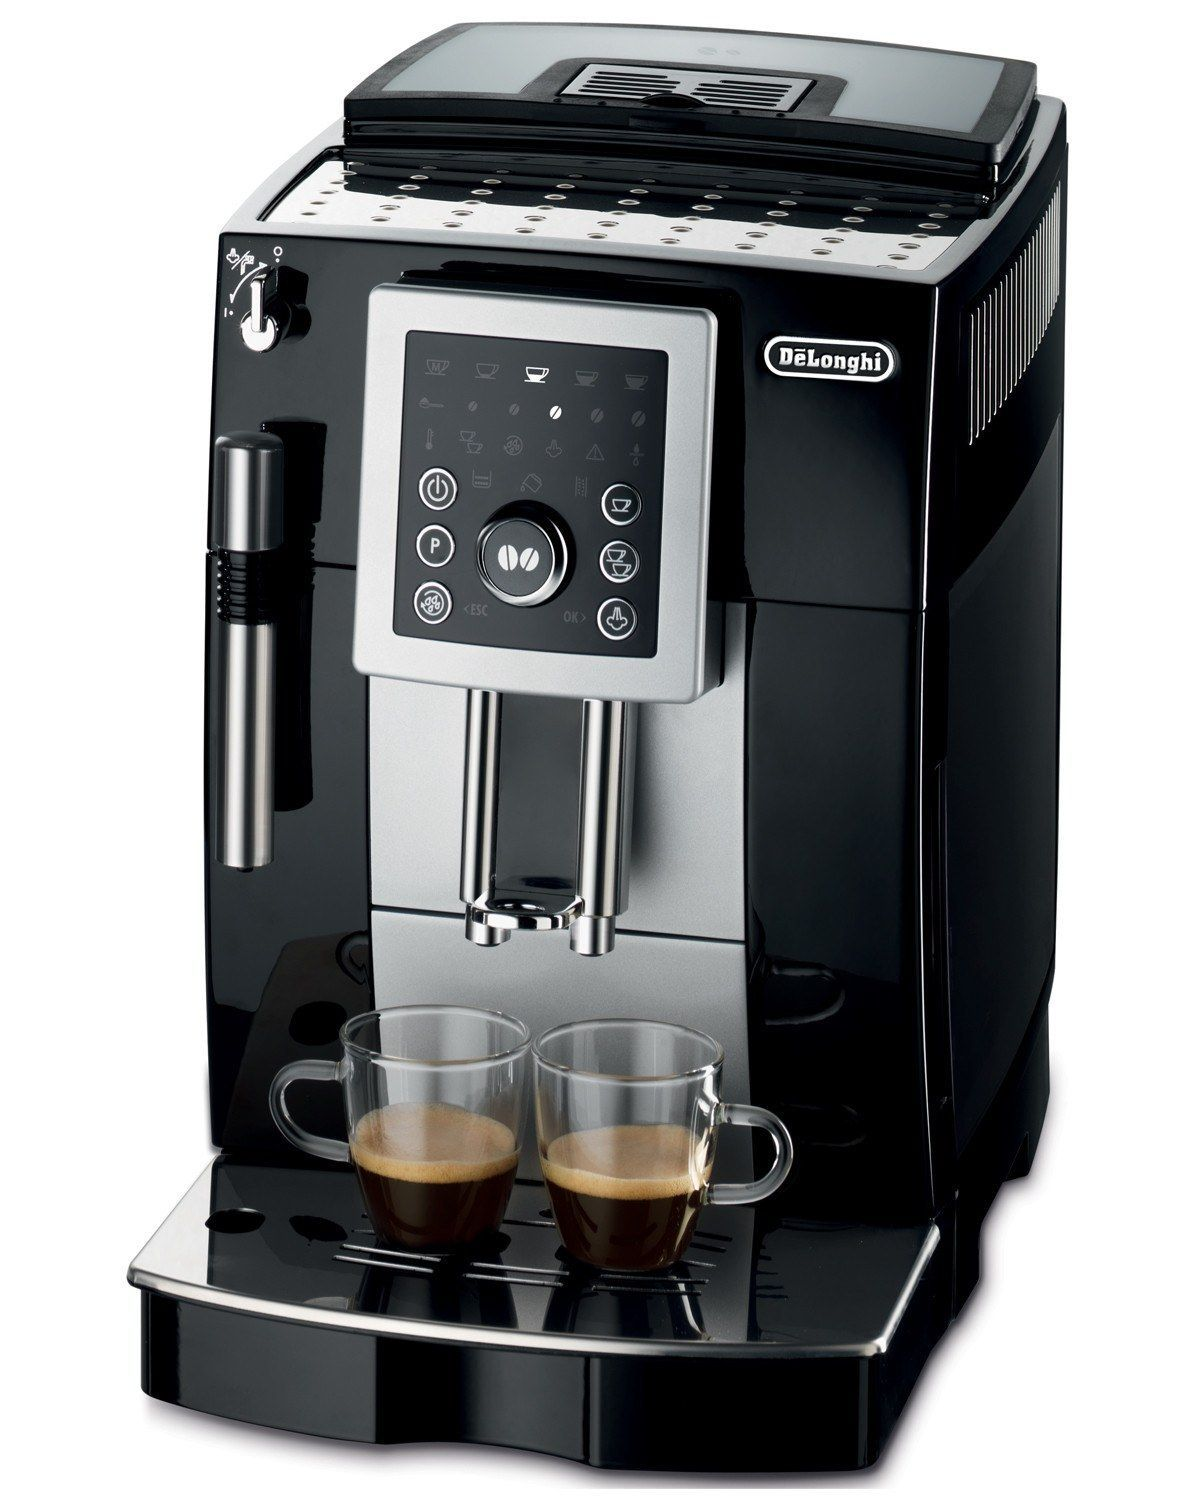 See You Elettrodomestici Delonghi Magnifica S Ecam23210b In 2019 Products Caffè